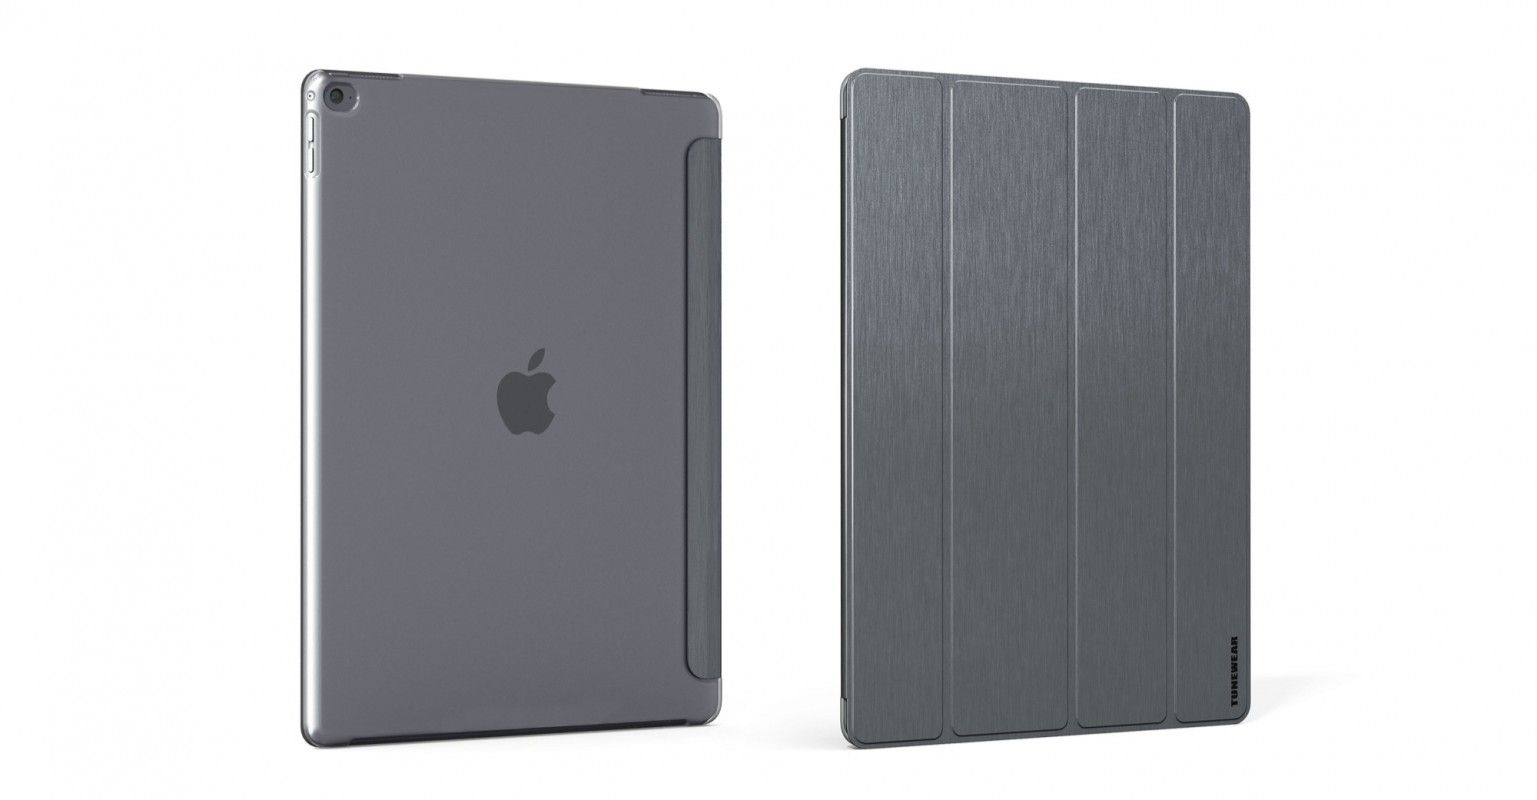 Brushed Metal Look SHELL with Front cover for iPad Pro (12.9インチ)